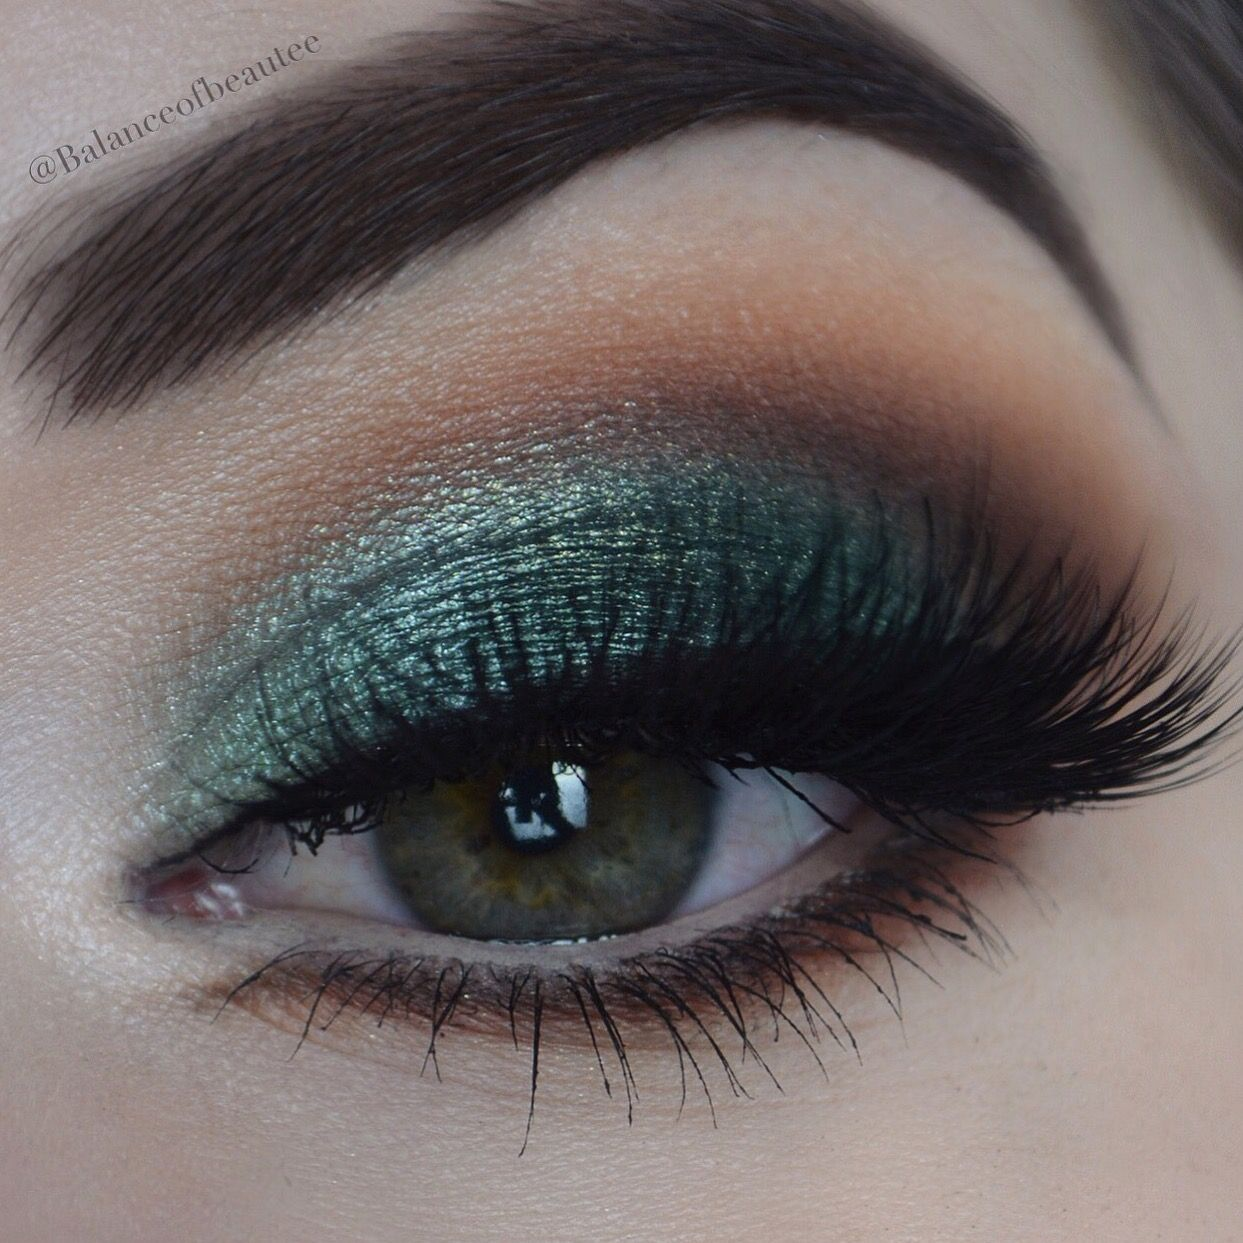 Check out our favorite emerald eye inspired makeup look embrace embrace your cosmetic addition with makeup geek watch makeup video tutorials learn tips from the experts and even buy our makeup online baditri Choice Image